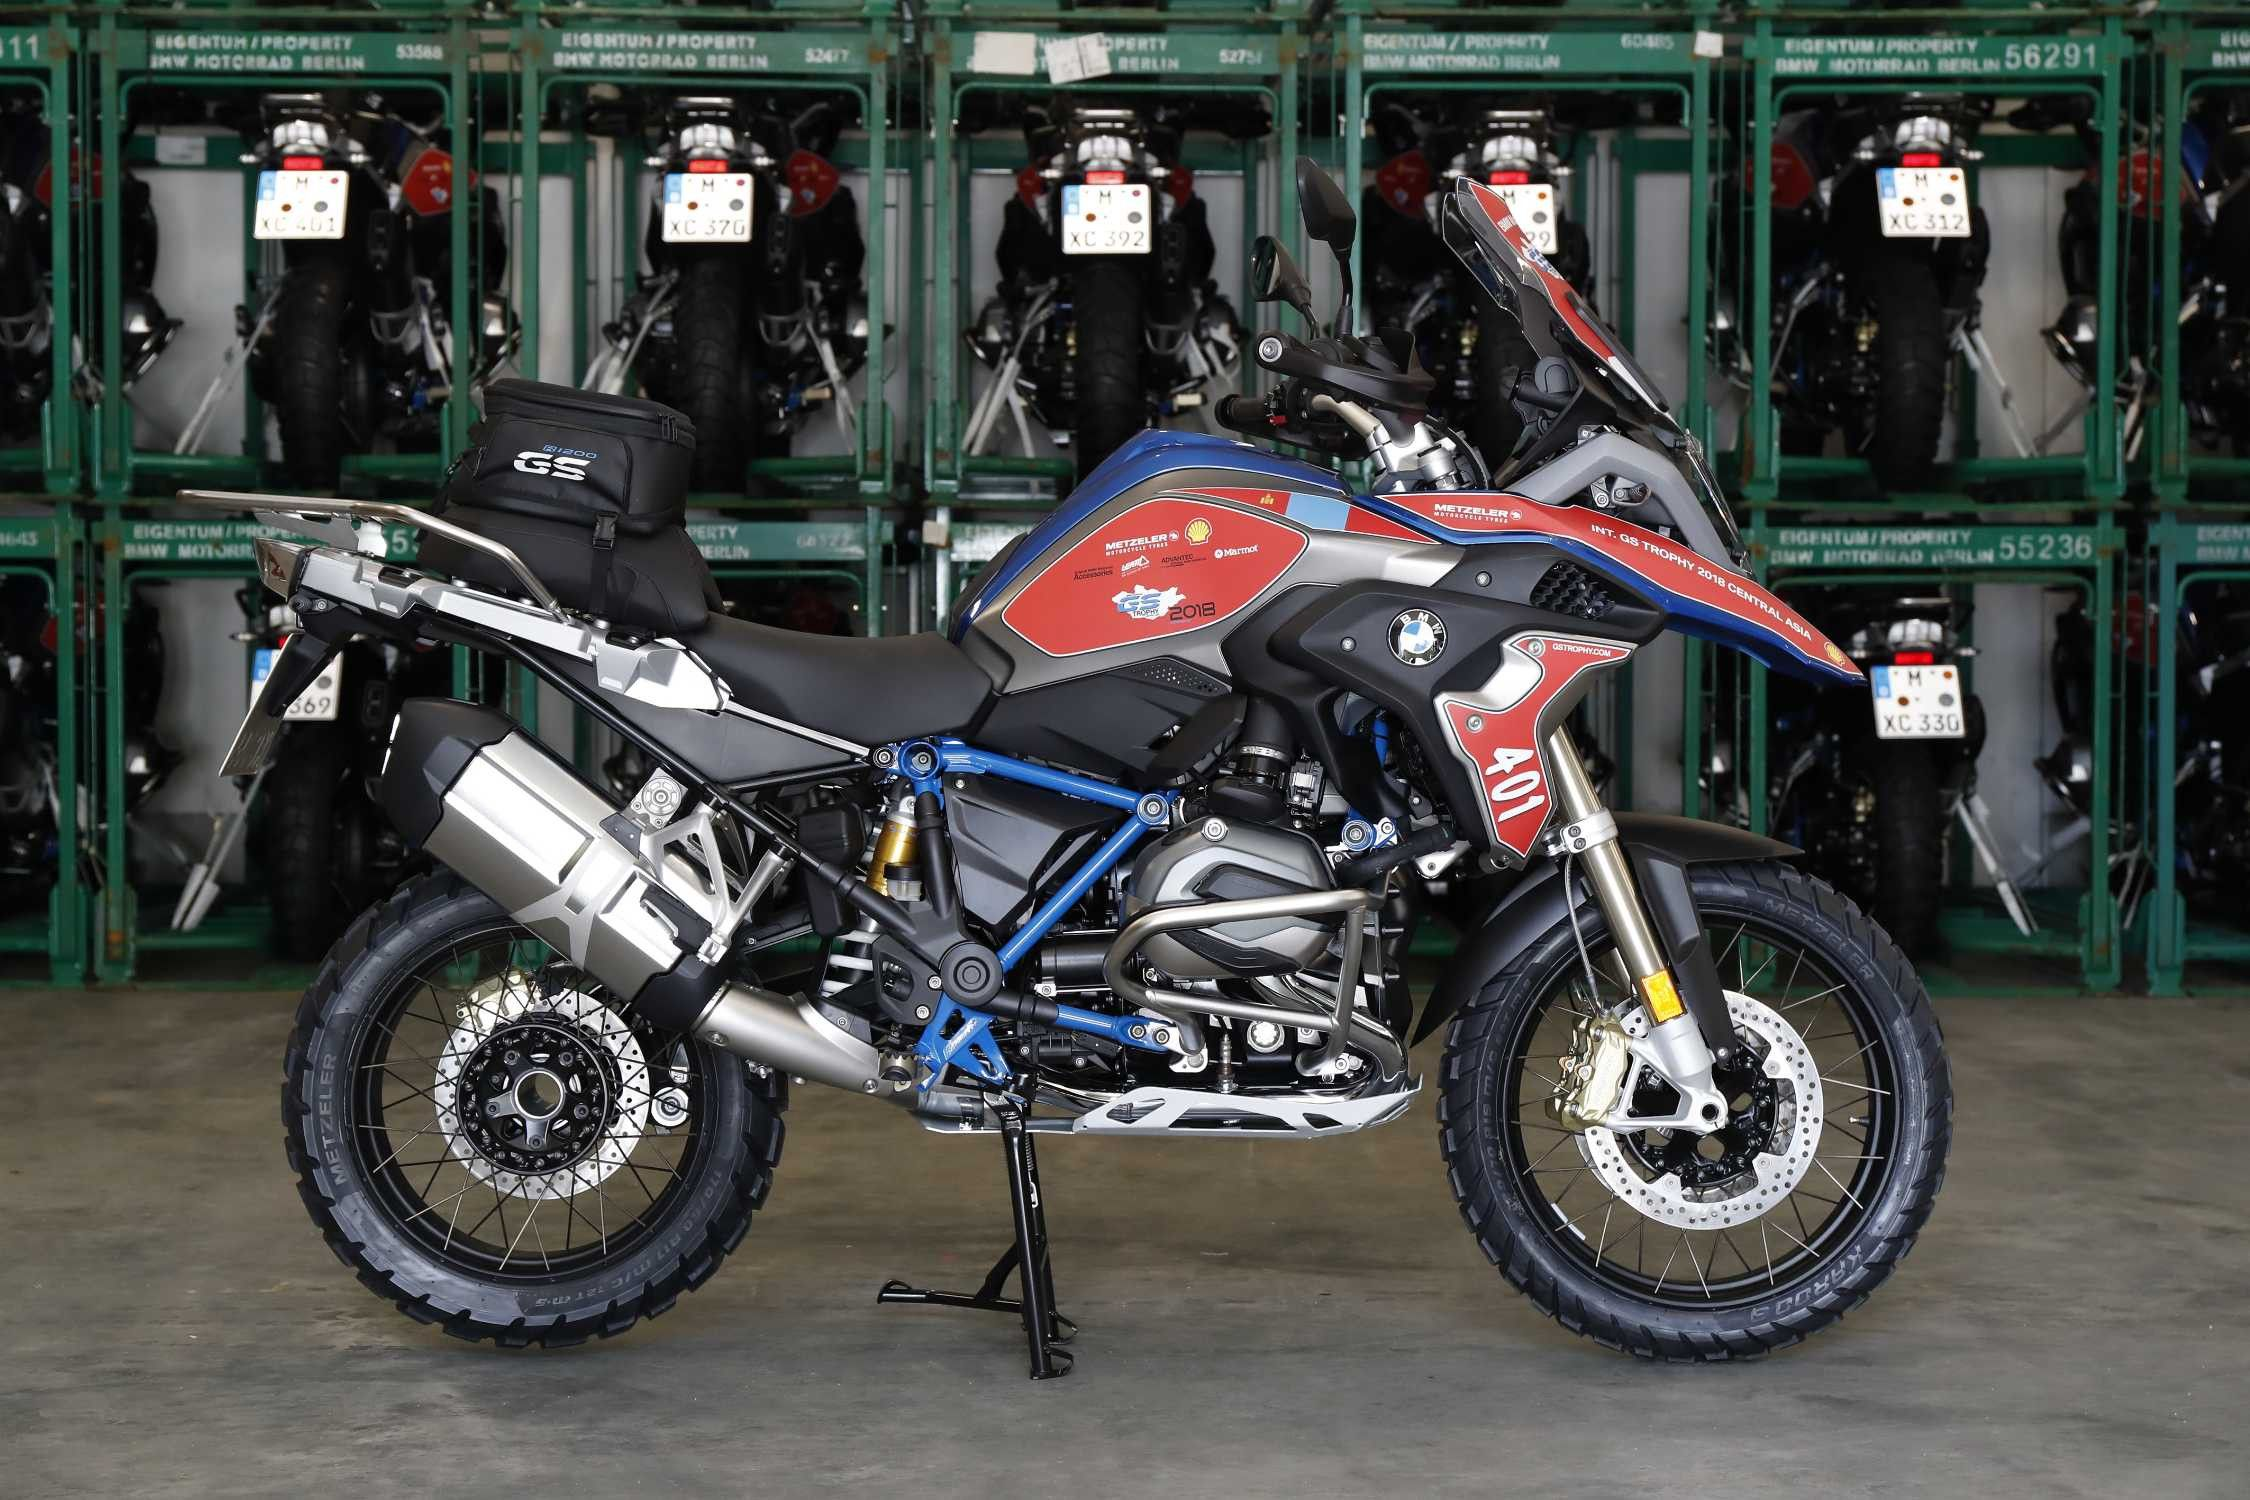 Bmw R1200gs 2020 Price And Release Date Di 2020